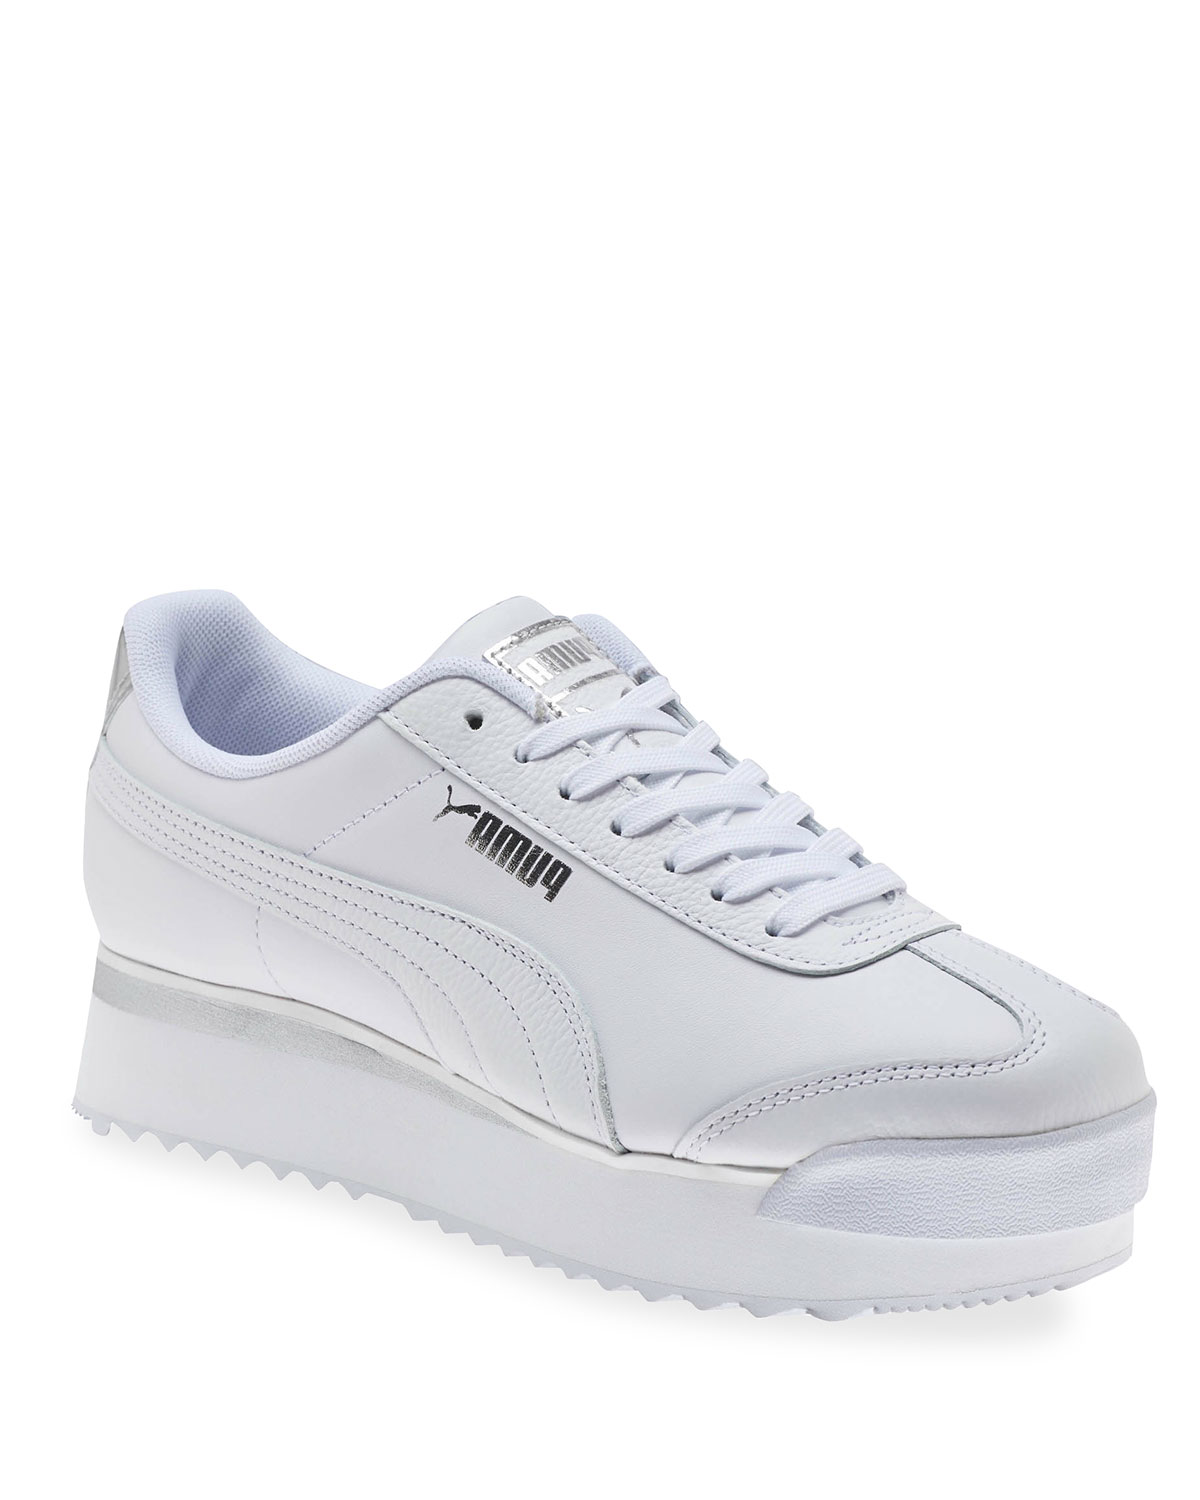 Women's Roma Amor Leather Sneakers